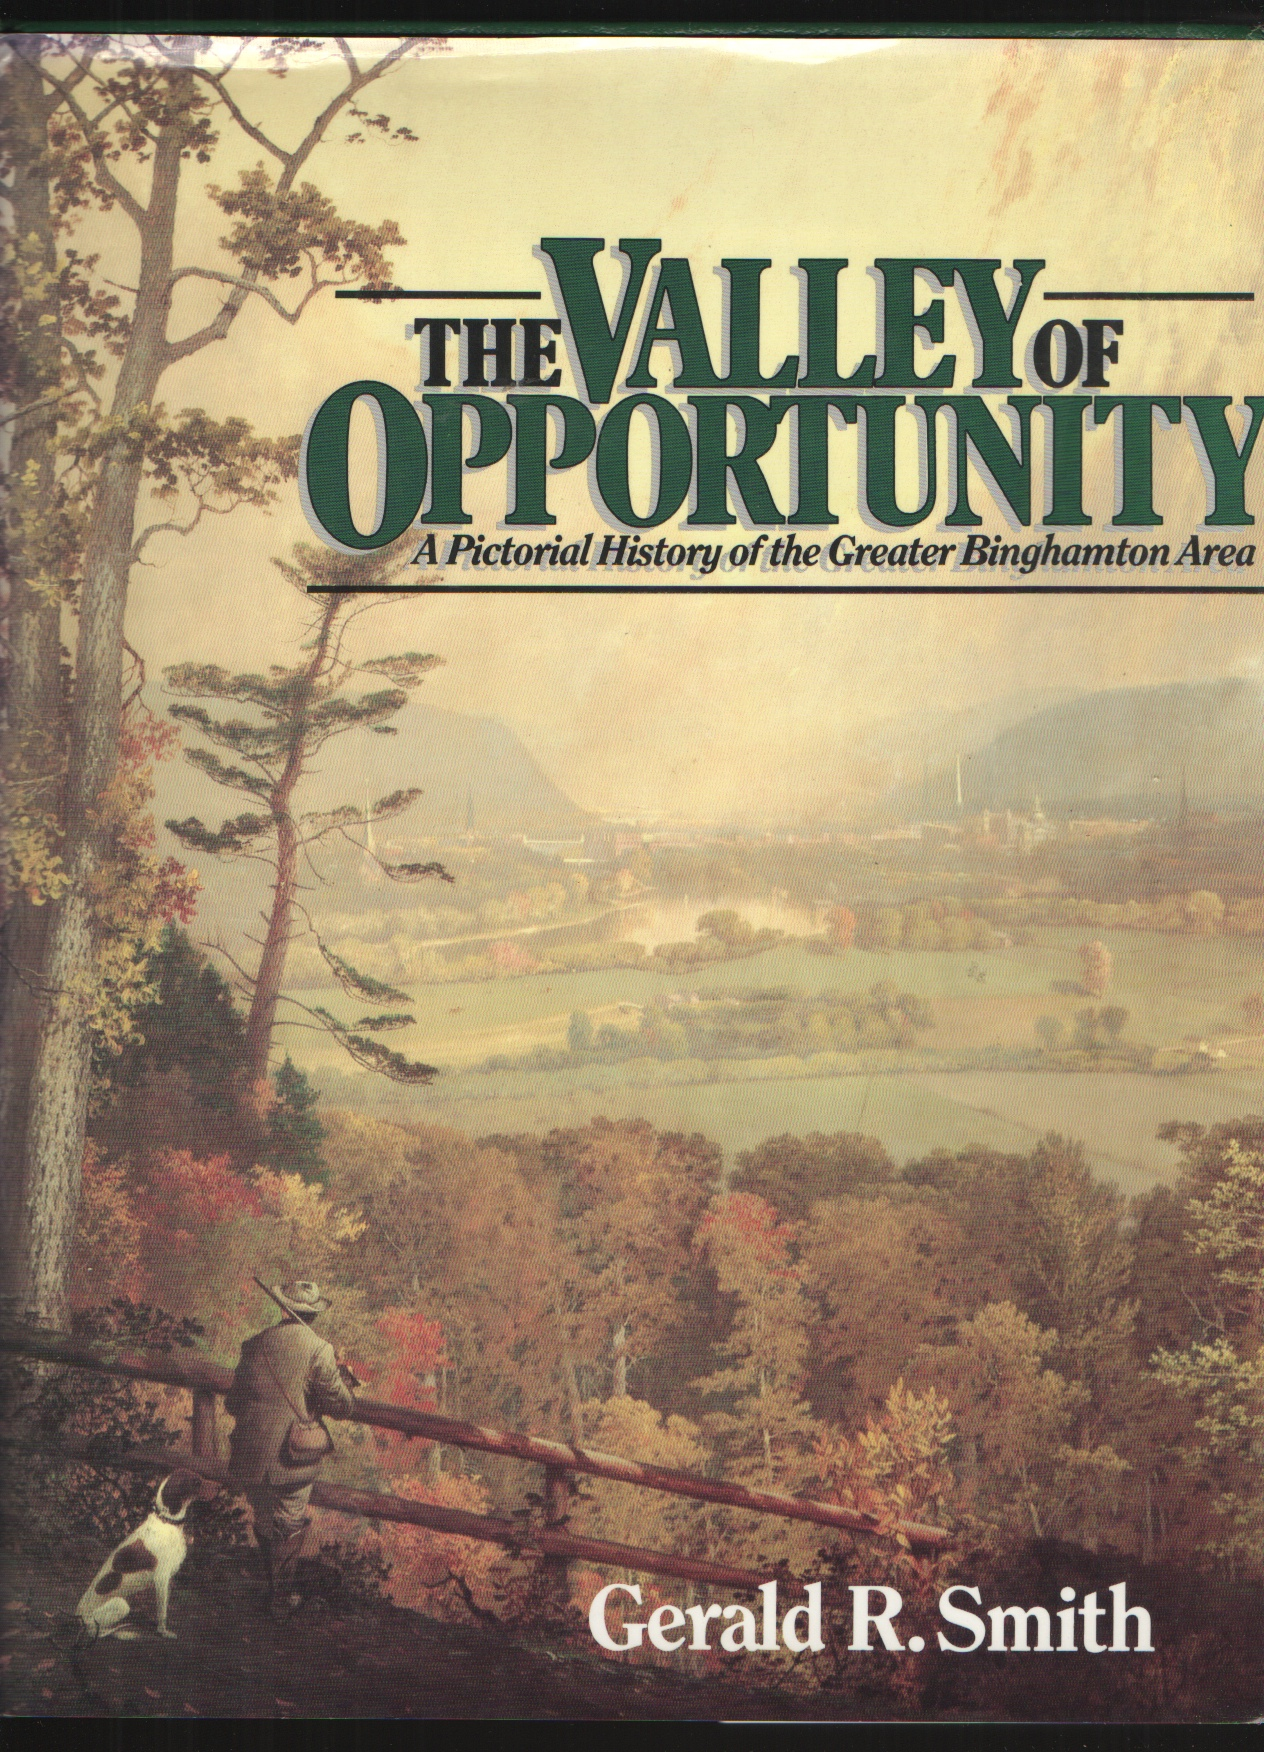 The Valley of Opportunity  A Pictorial History of the Greater Binghamton Area, Smith, Gerald R.